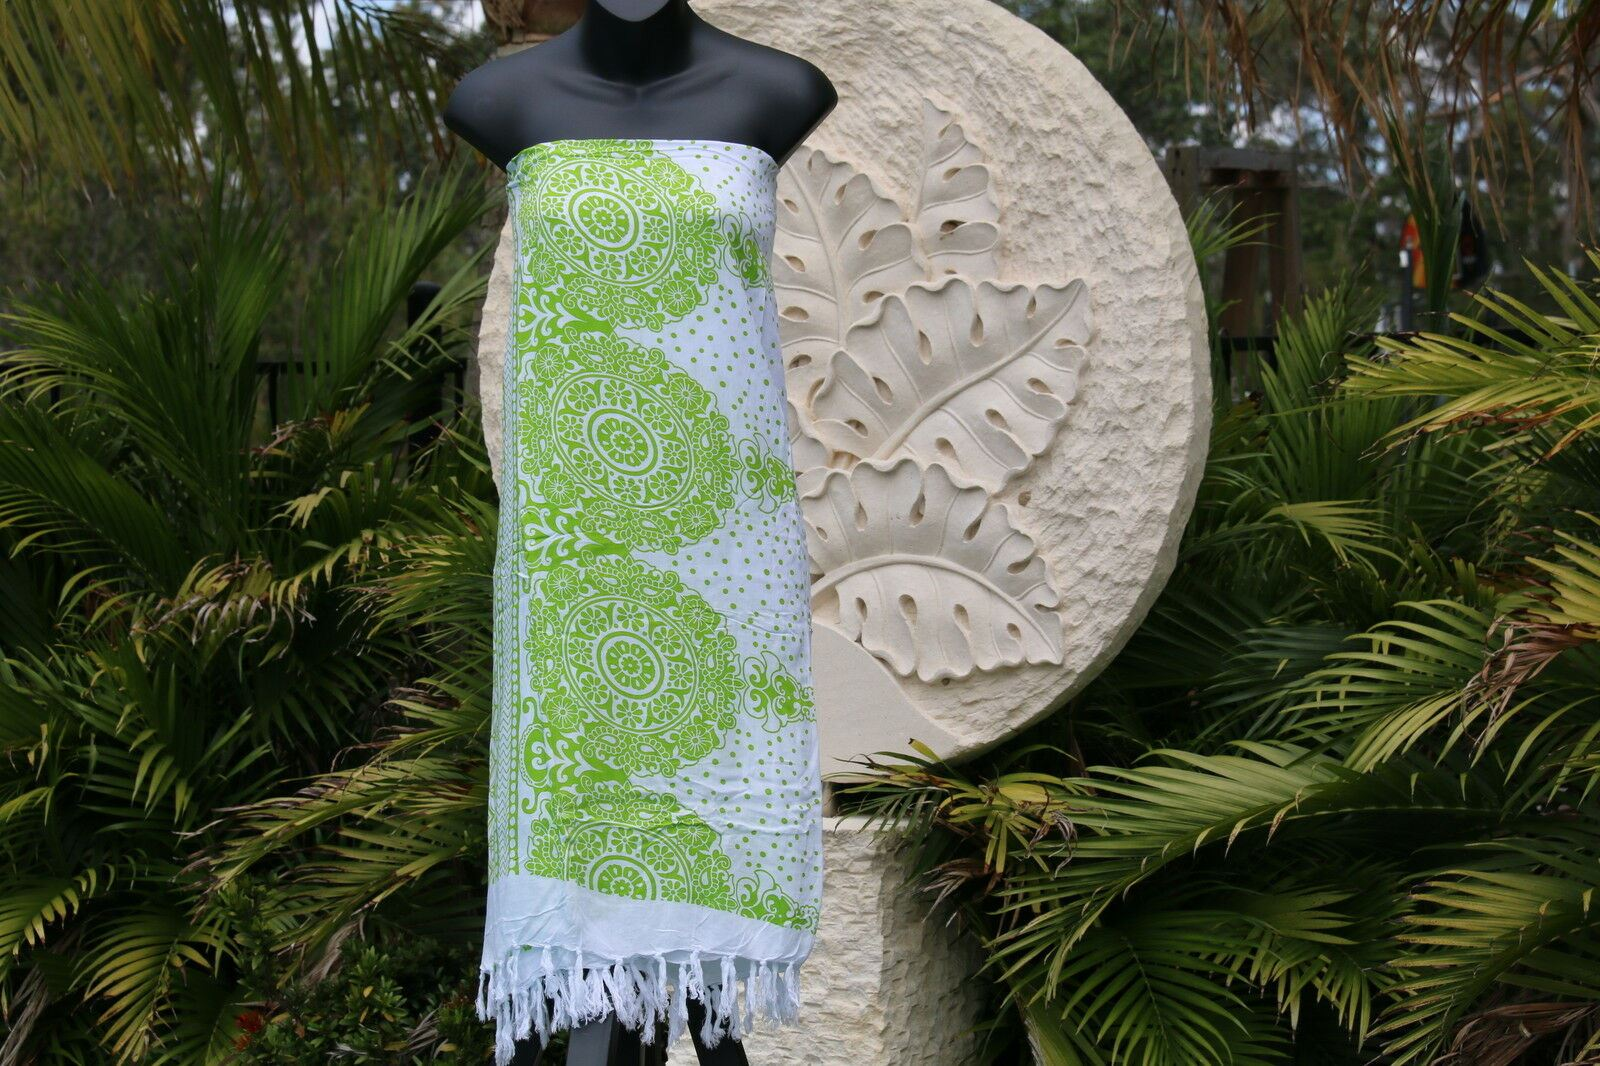 Bali Beach Sarong - Summer Beach Sarong - Bikini Cover Up - NEW 4 COLOURS AVAIL.